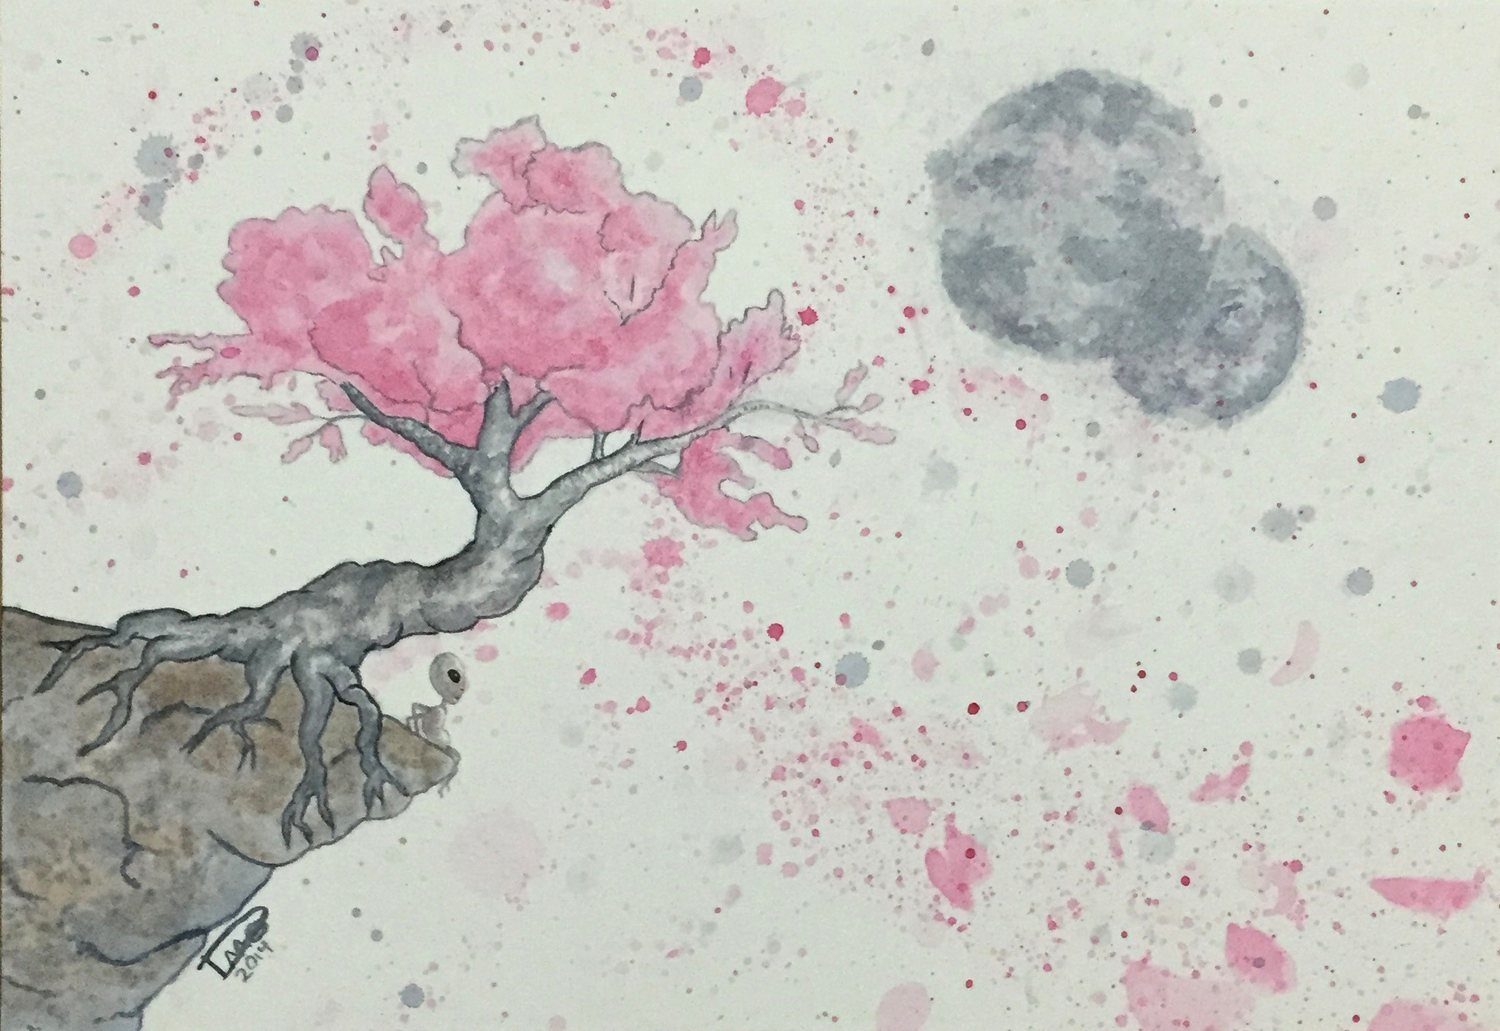 Wasn't sure what to do with the background on this one but I didn't want to do the same thing as the Chinese version. Settled on using paint splatters to create some motion while keeping a simple color palette.